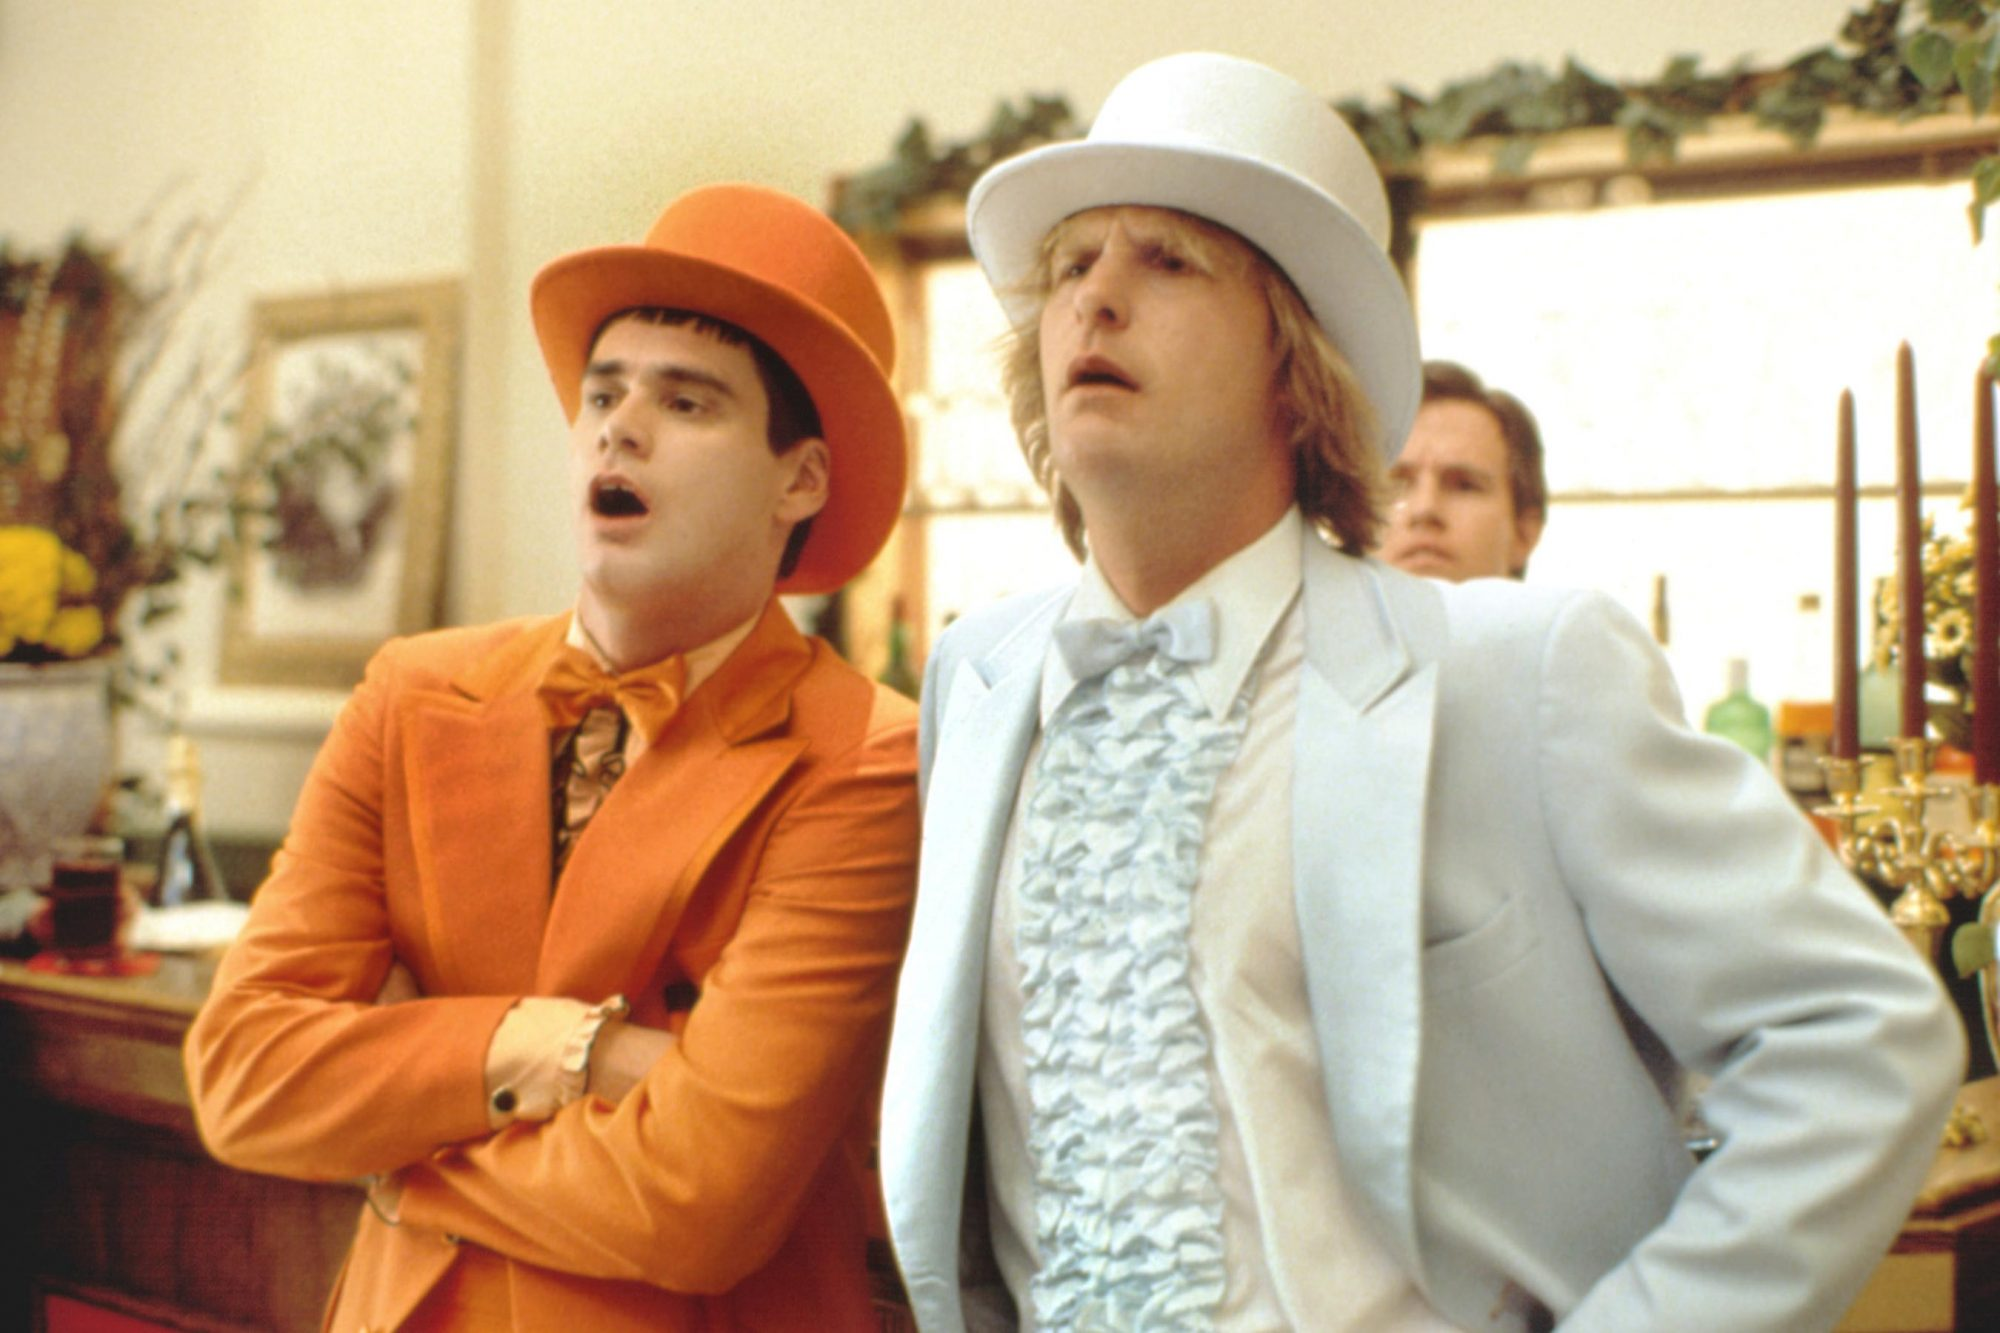 DUMB AND DUMBER, Jim Carrey, Jeff Daniels, 1994, (c) New Line/courtesy Everett Collection